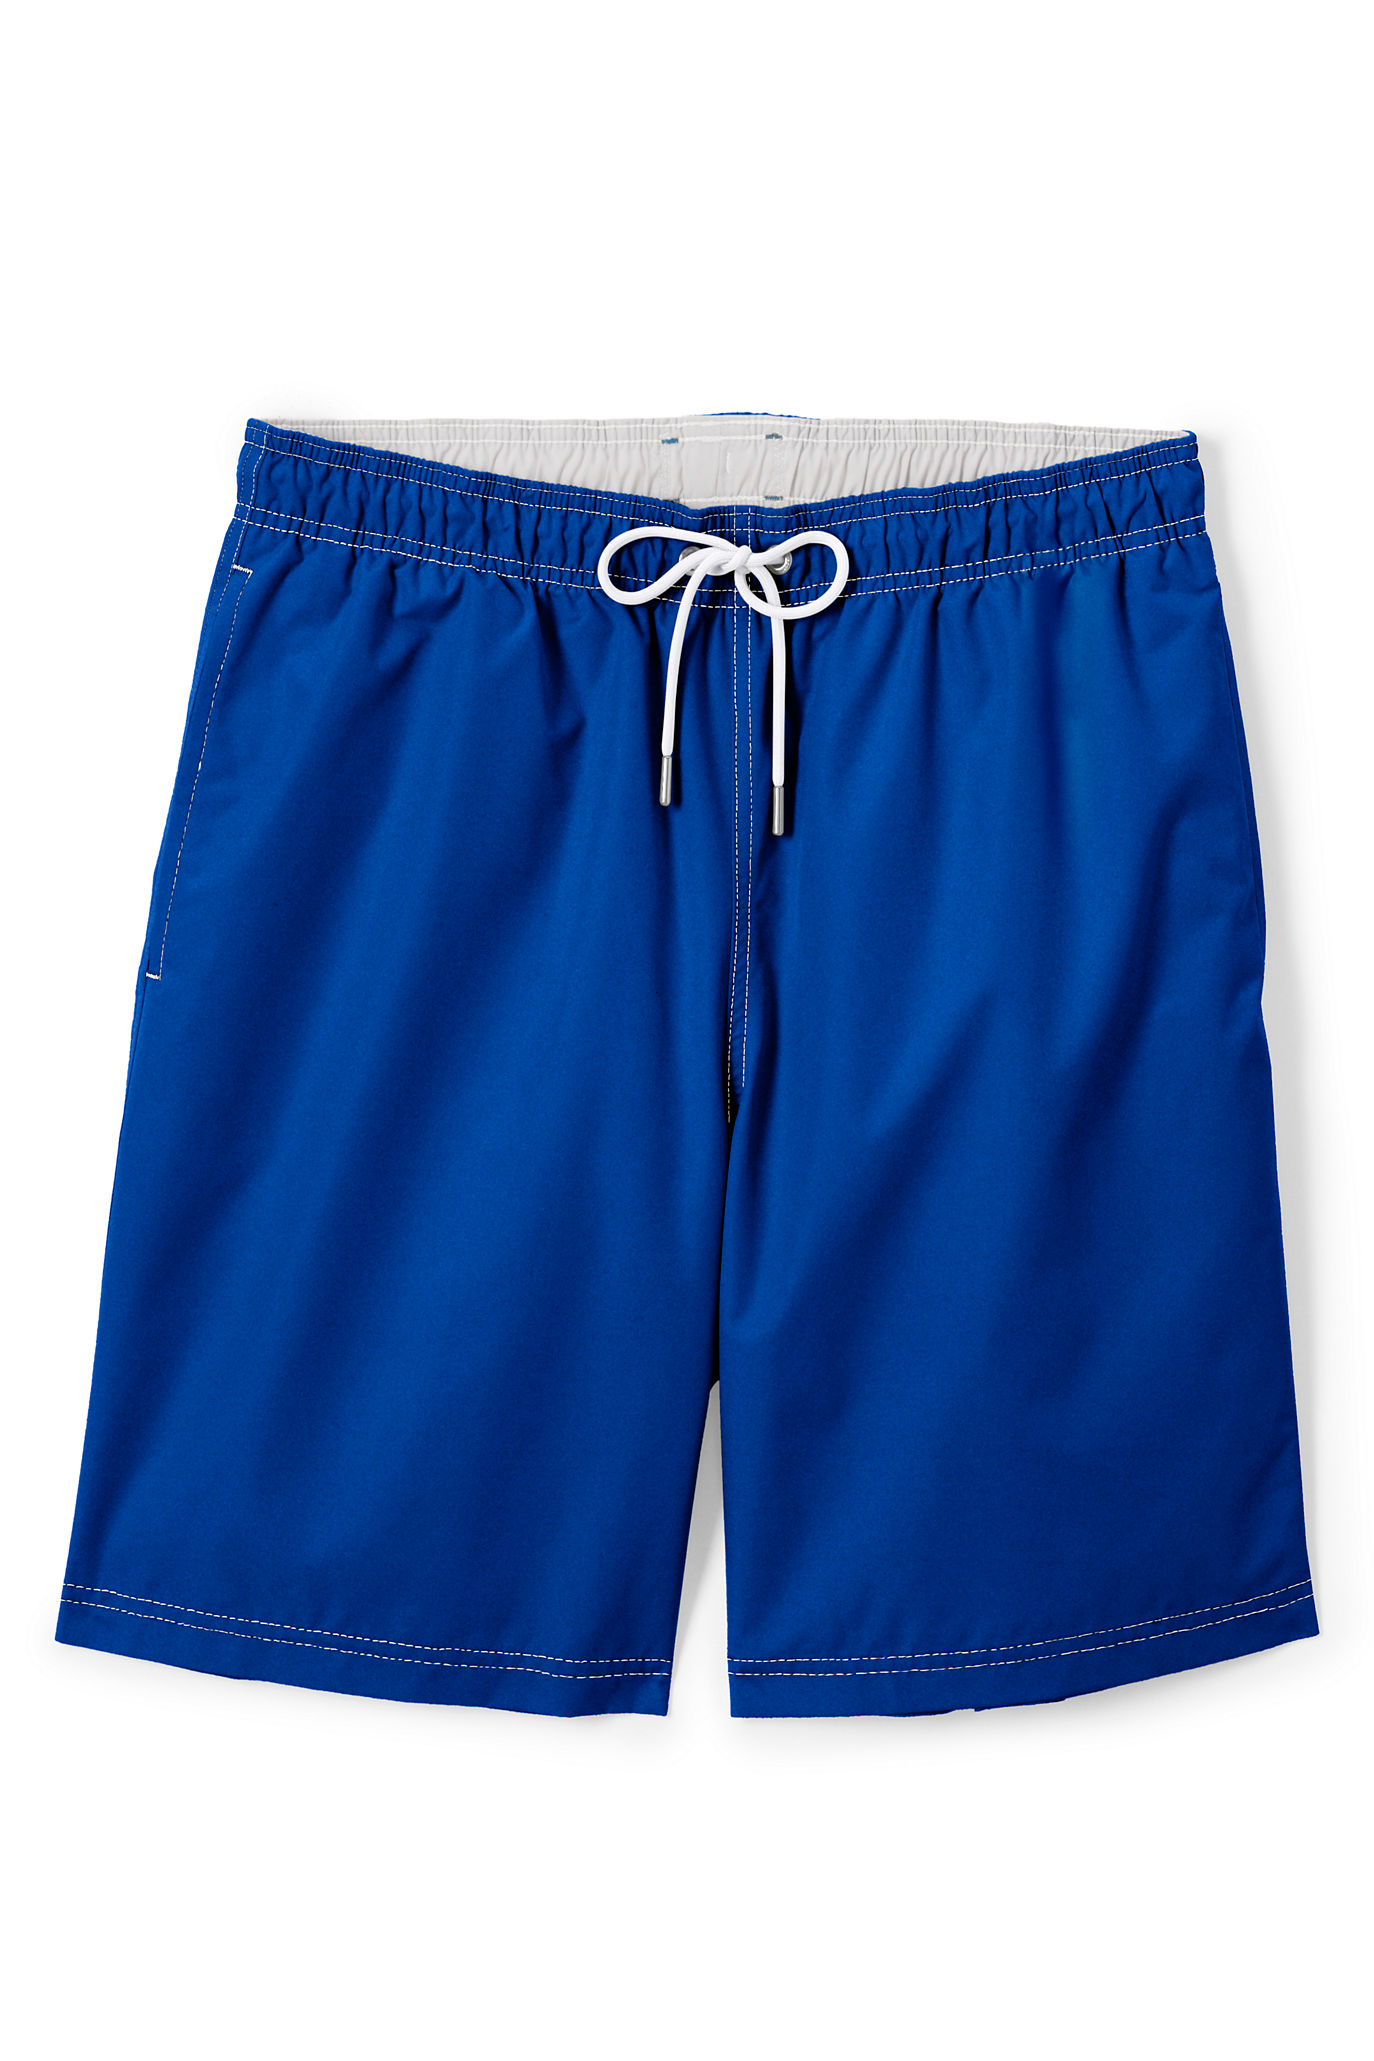 24a03baaf5 School Uniform Men's Solid Swim Board Shorts. See More. Swimsuit Bottoms Swim  Shorts & Men's Bathing Suits